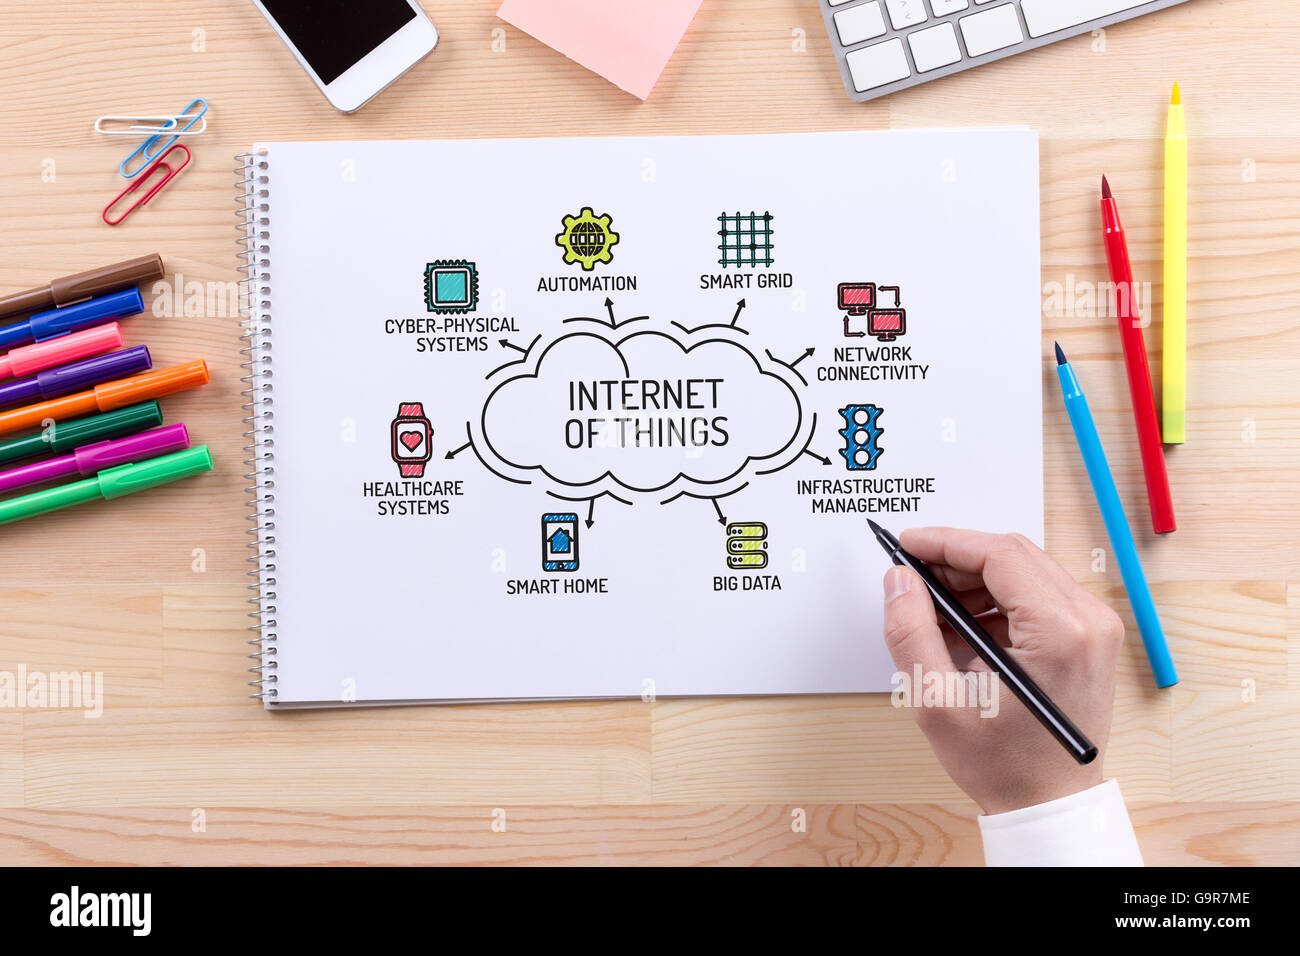 Internet of Things chart with keywords and sketch icons Stock Photo